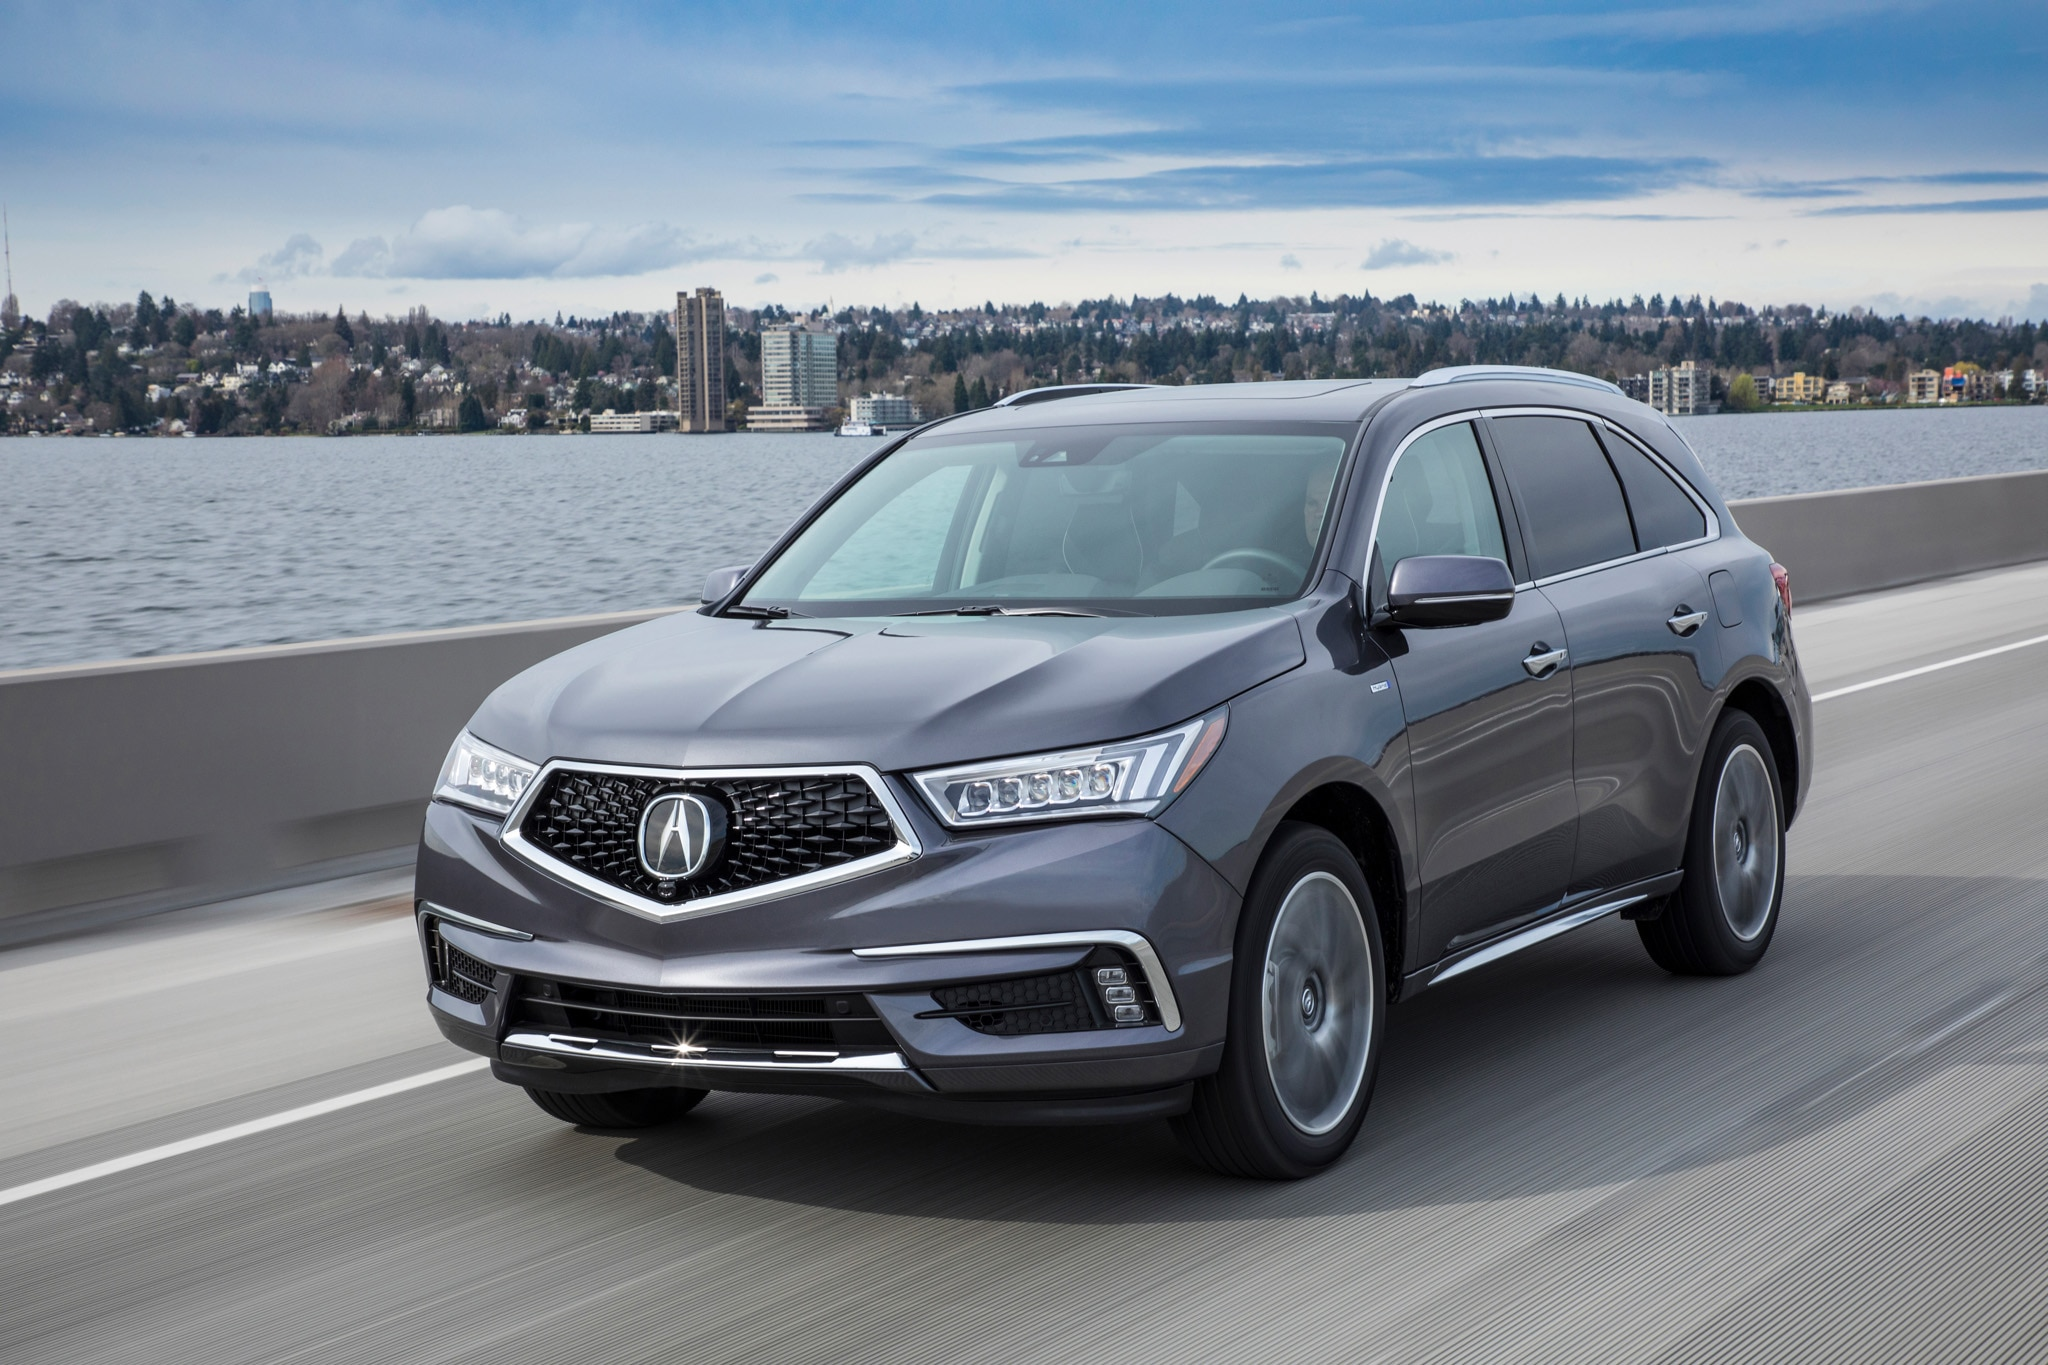 2017 Acura MDX Sport Hybrid SH-AWD First Drive Review ...